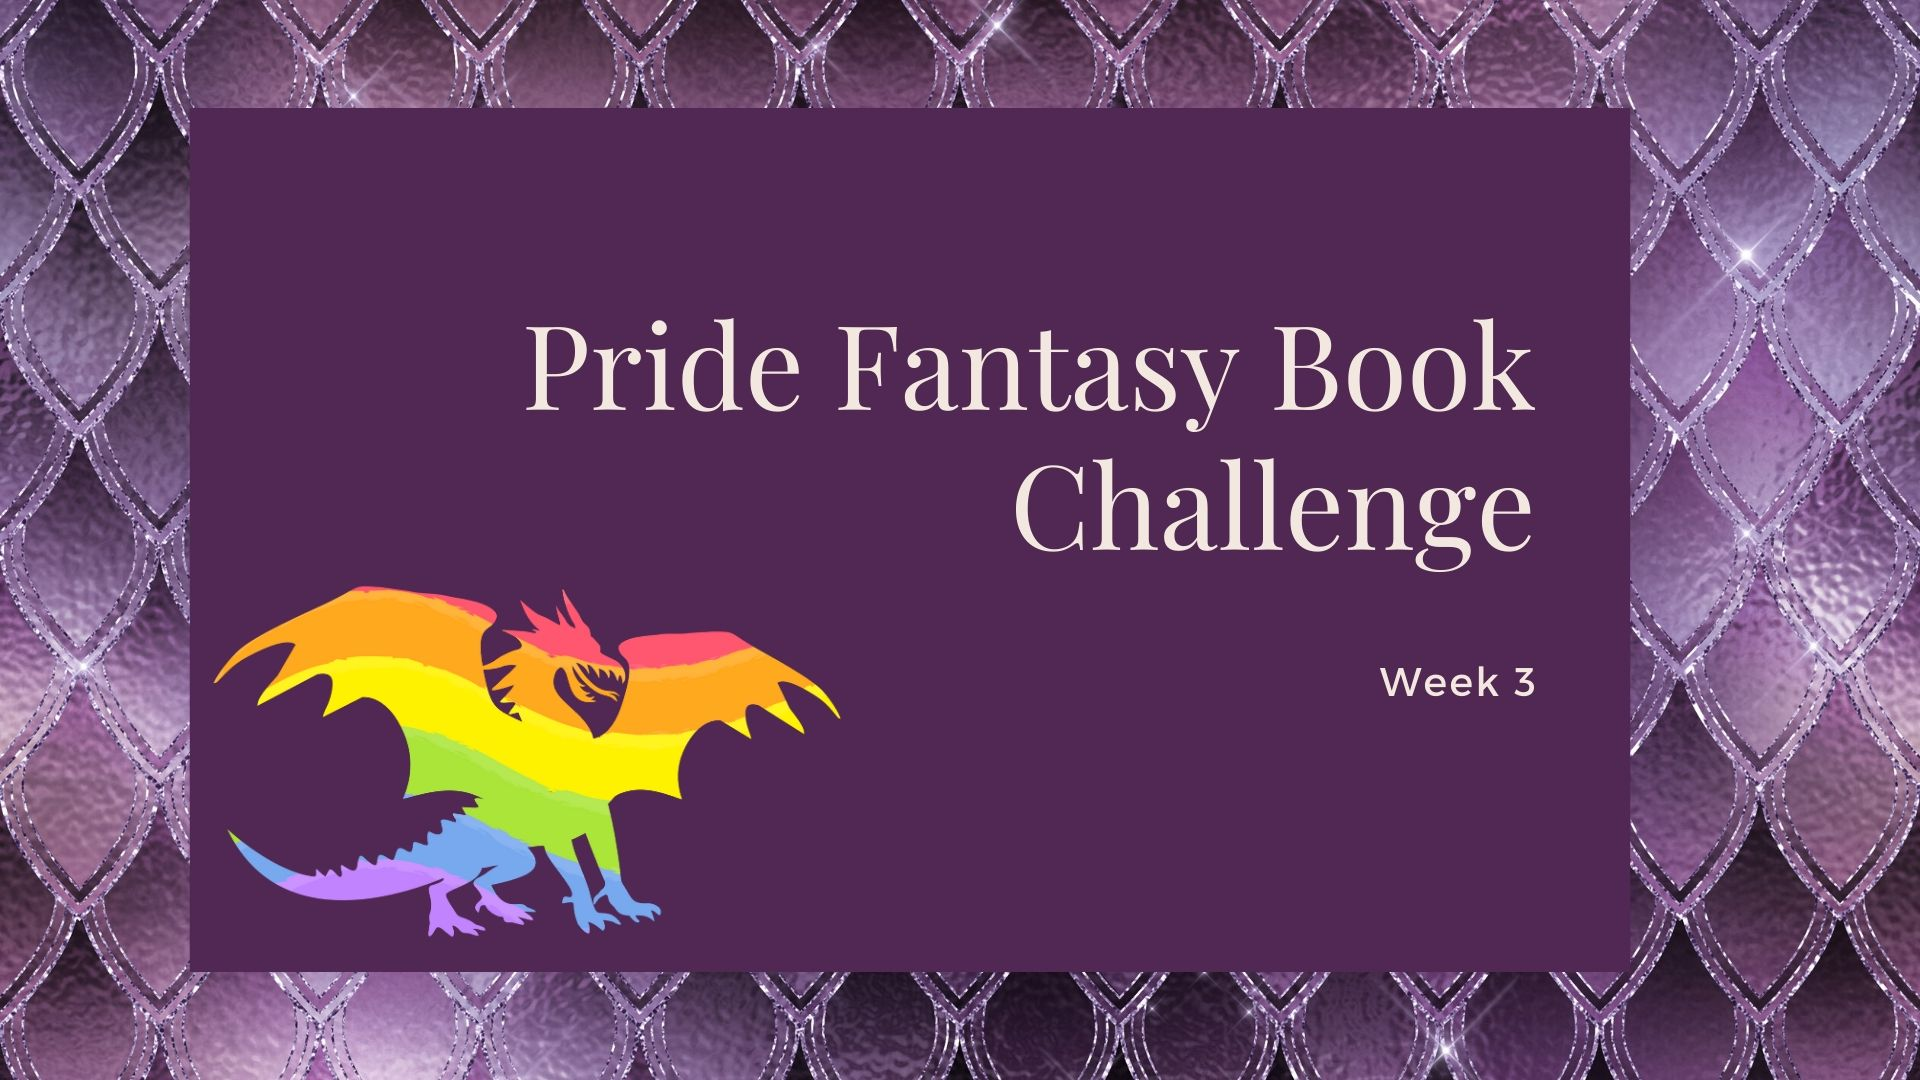 Pride Fantasy Book Challenge: Week 3